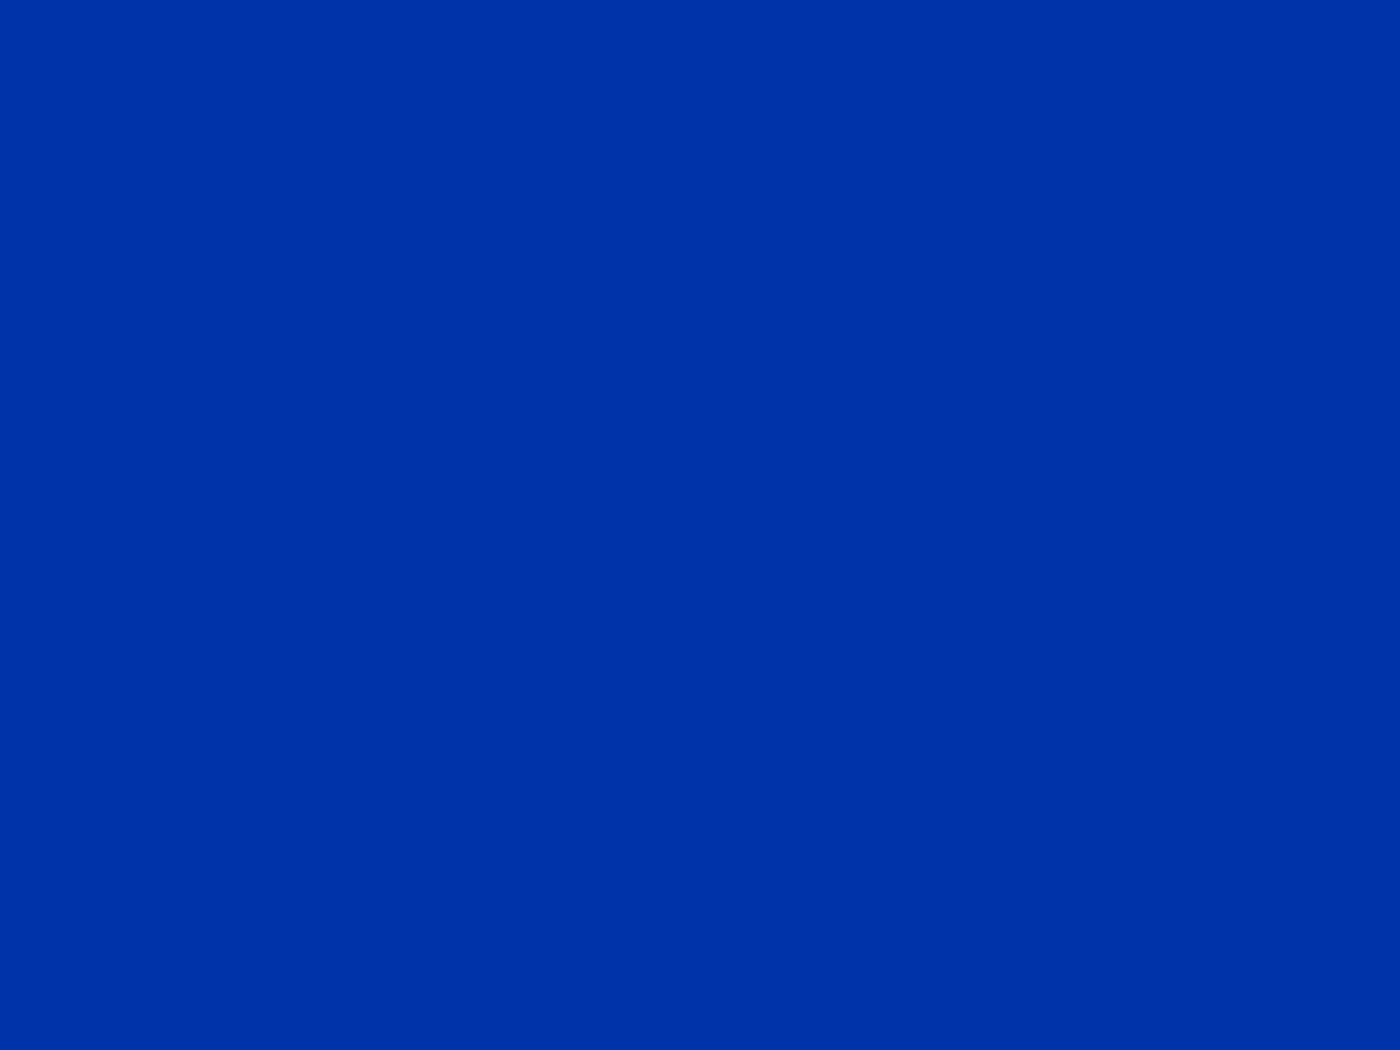 1400x1050 UA Blue Solid Color Background